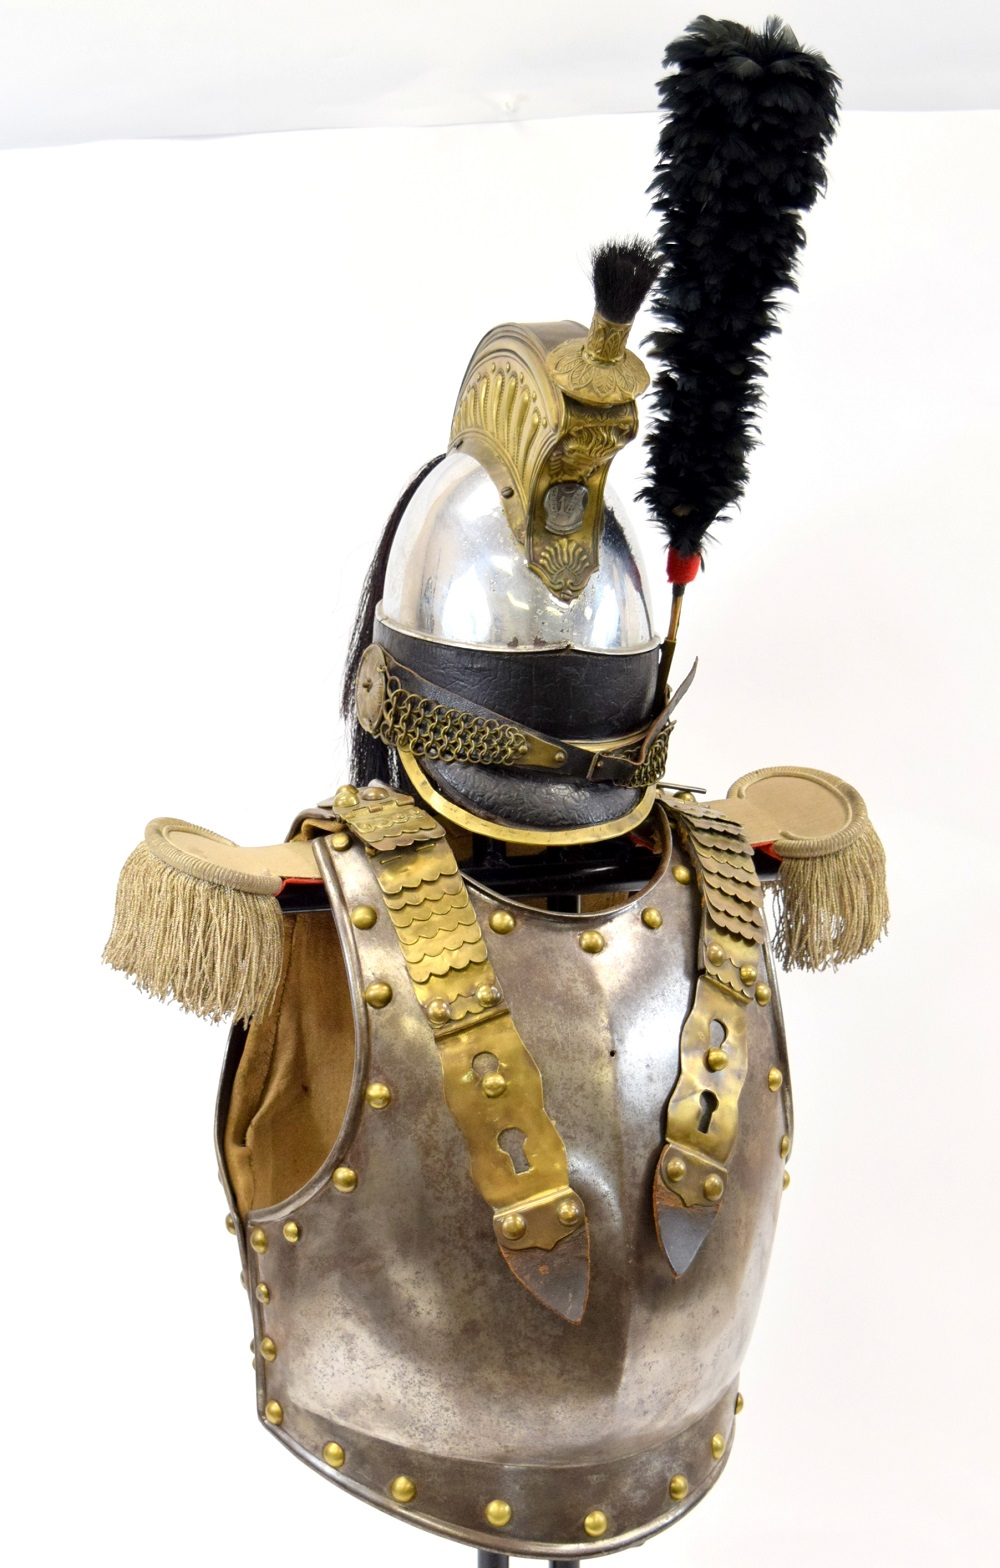 Circa 1830s Complete French Cuirassier or Dragoon Officers Cuirass & Helmet with Unusual Regimental Badge